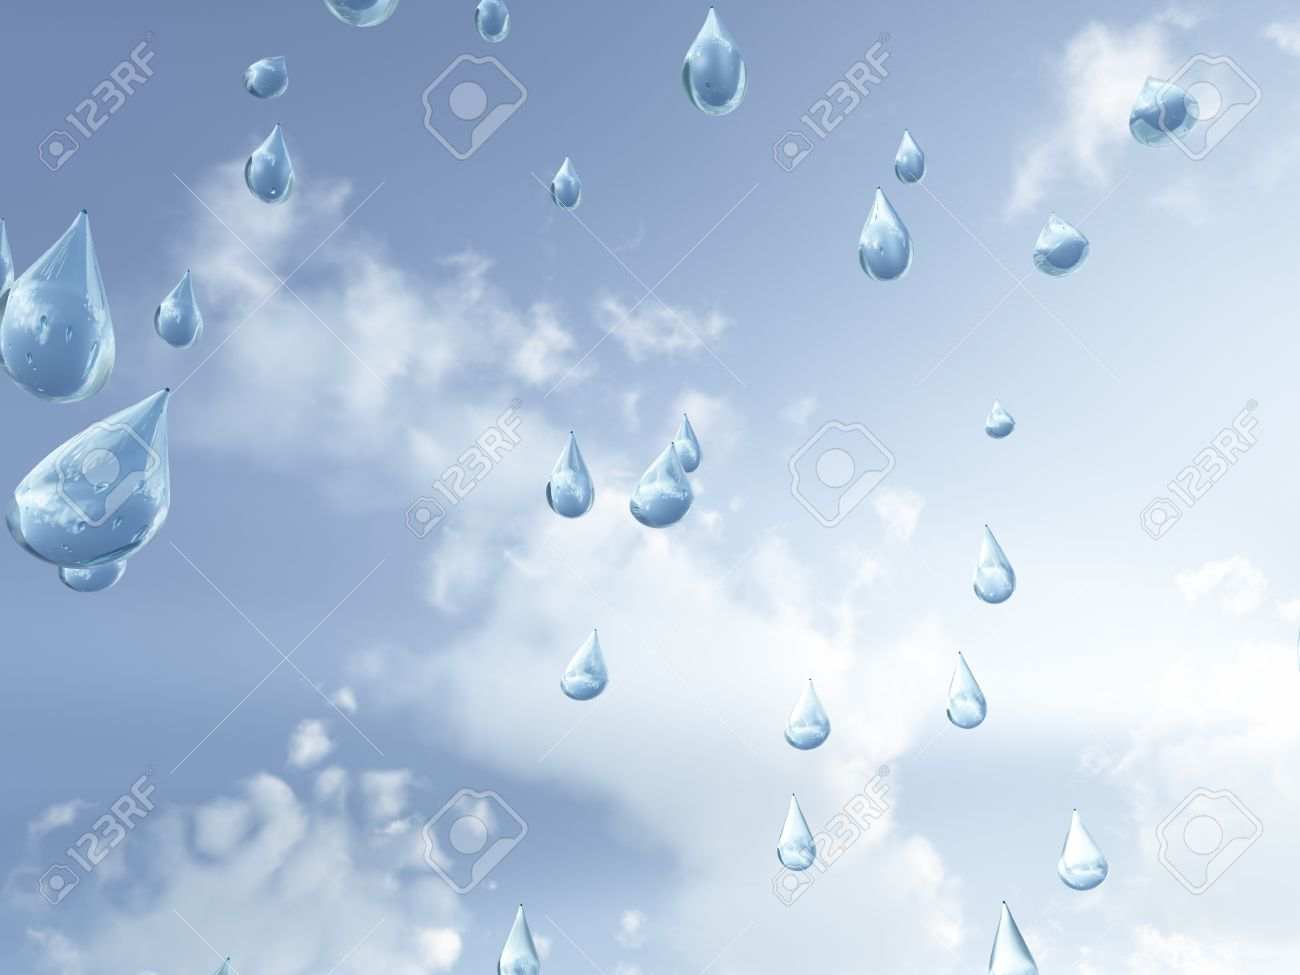 Raindrops Falling From The Sky